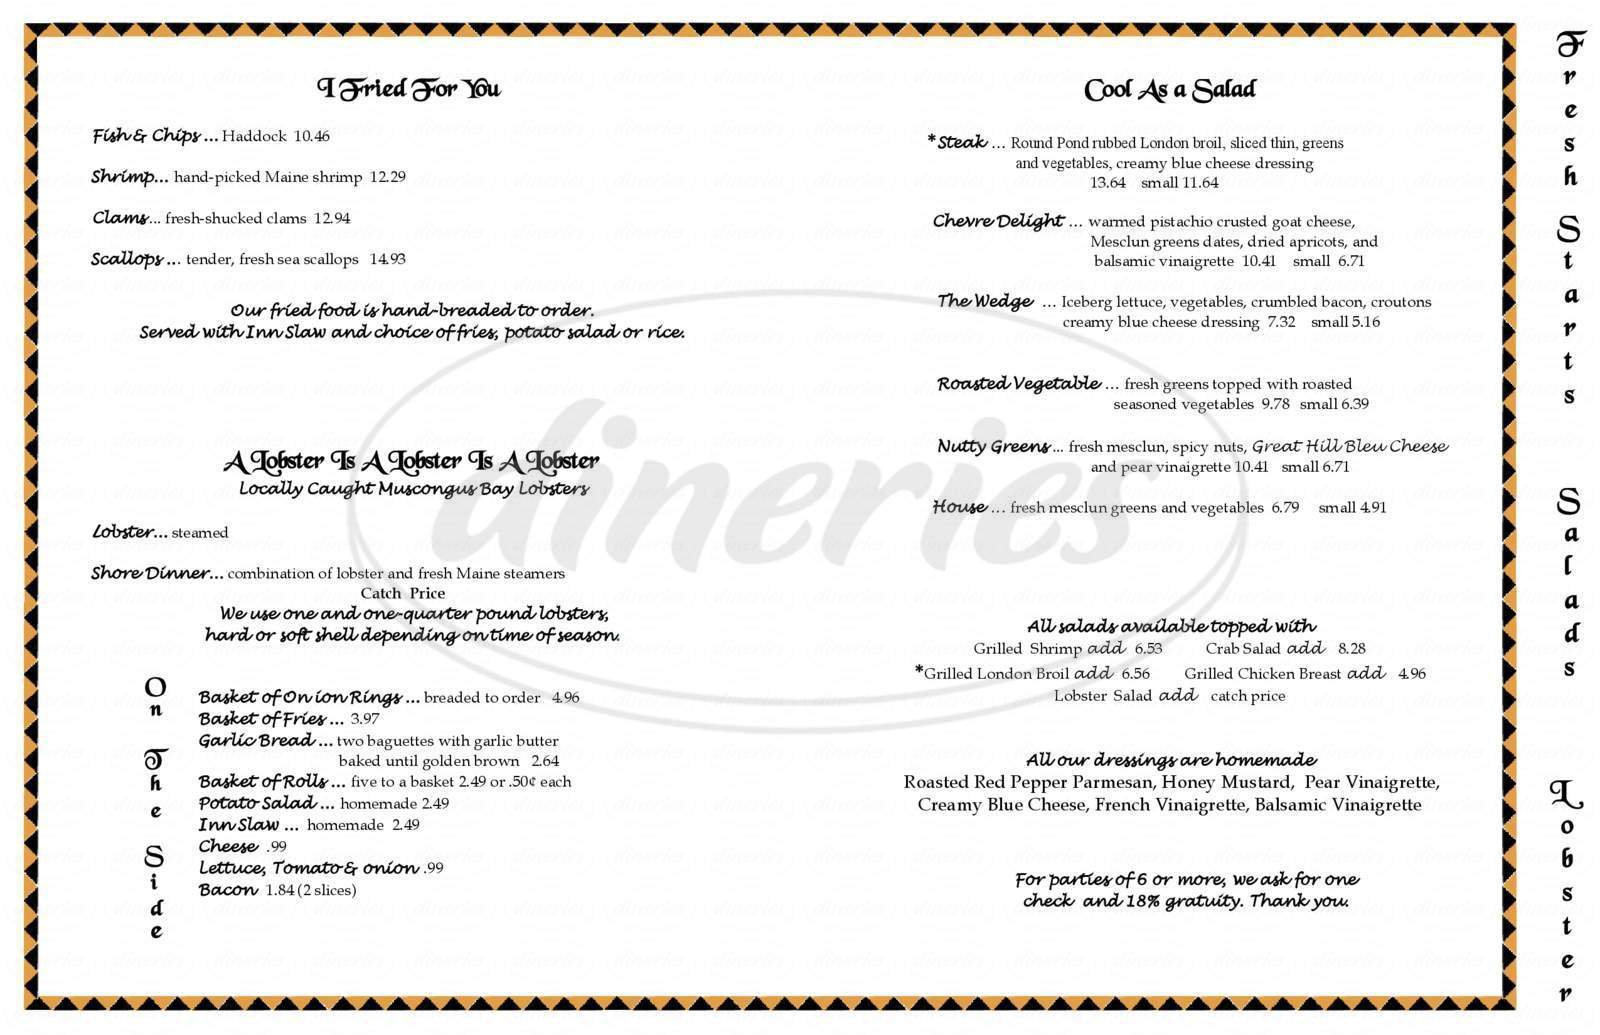 menu for Anchor Inn Restaurant